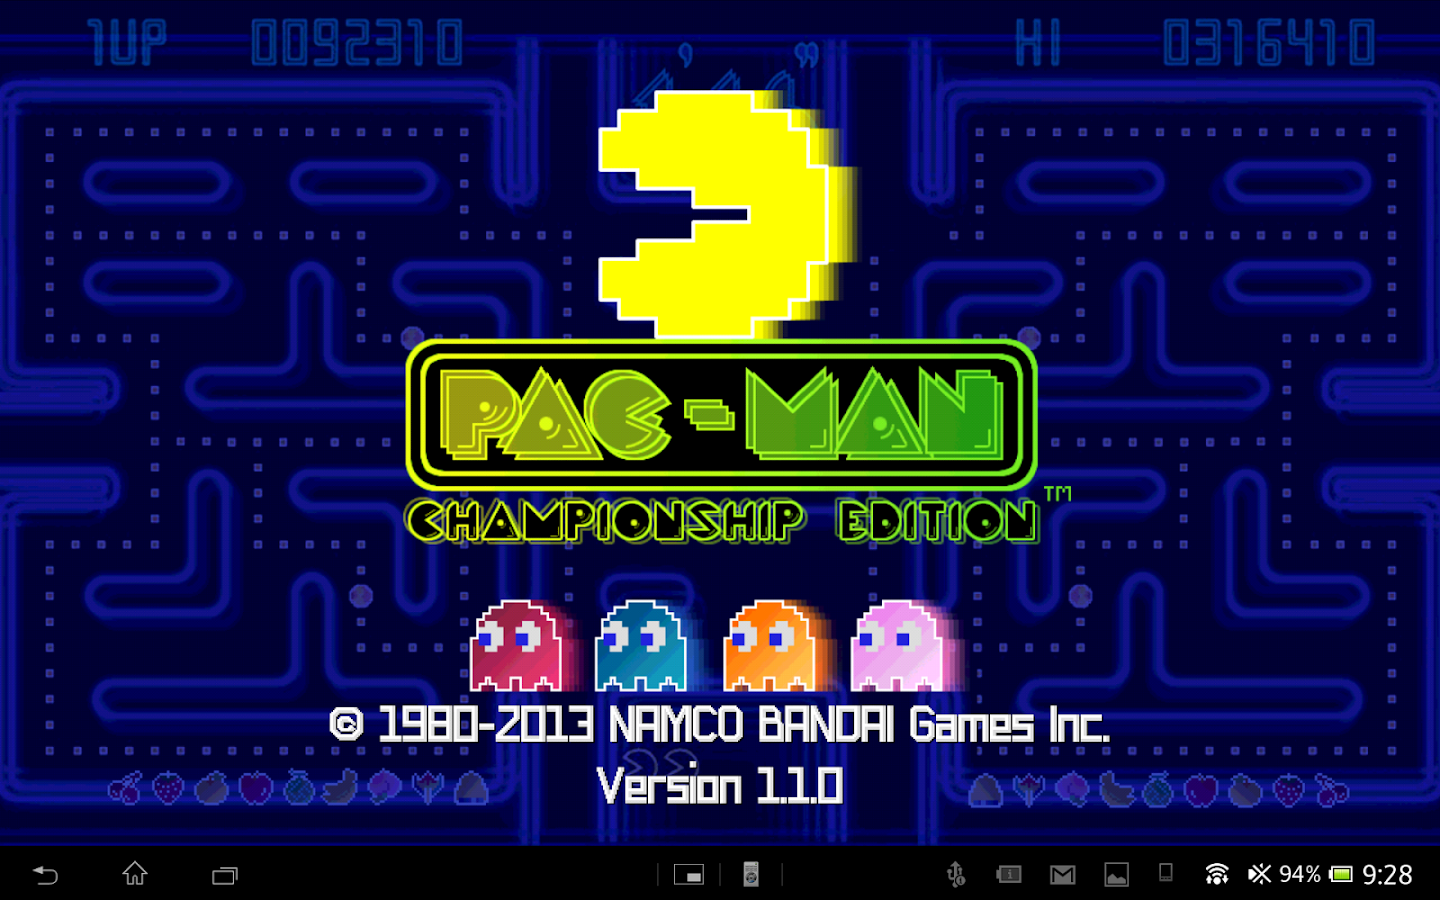 PAC-MAN Championship Edition Screenshot 8